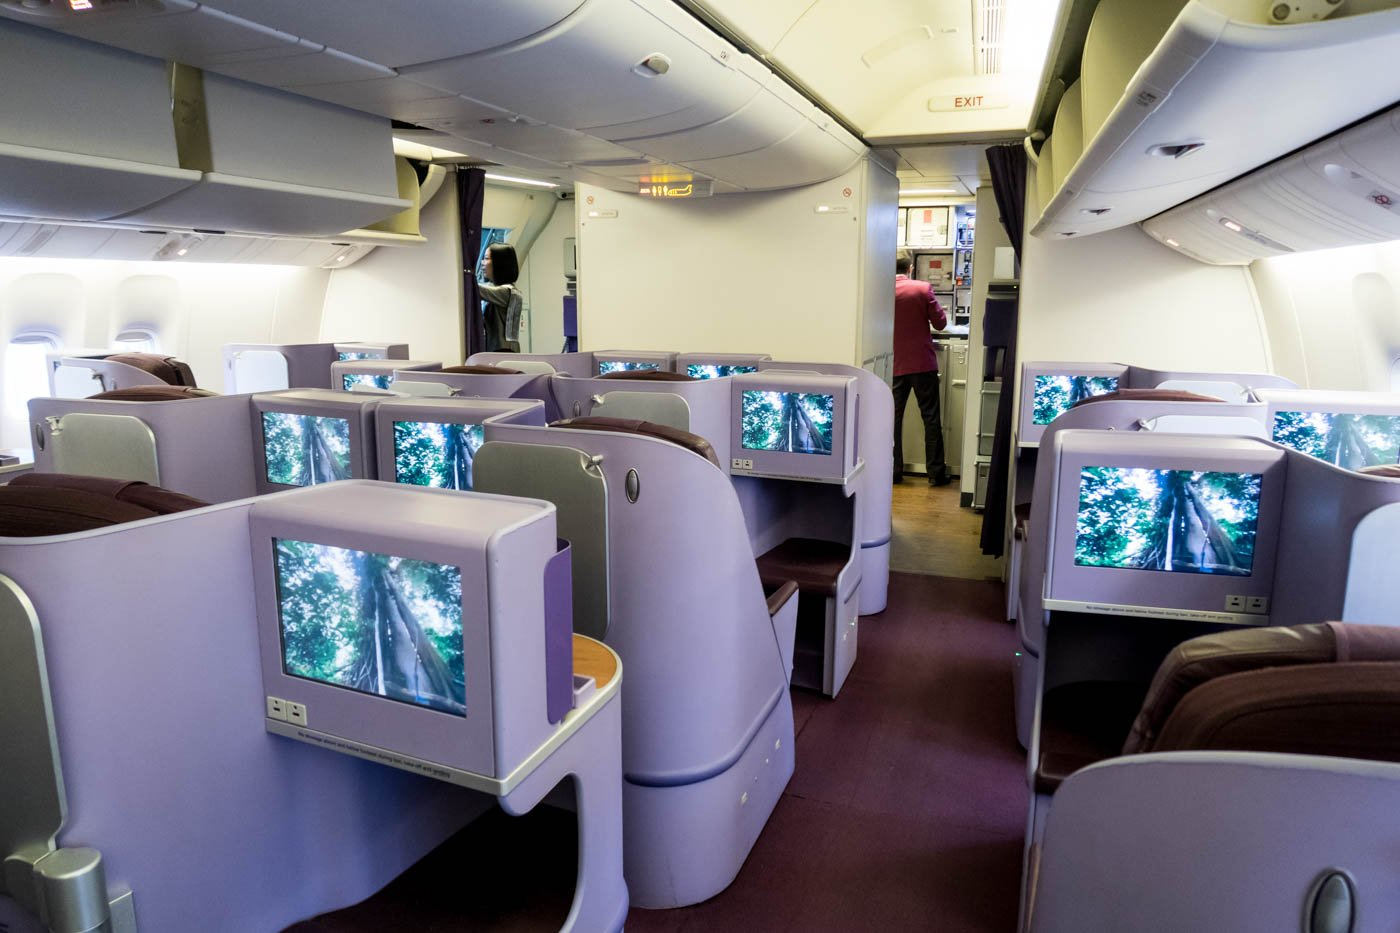 Thai Airways Boeing 777-300ER Business Class Cabin